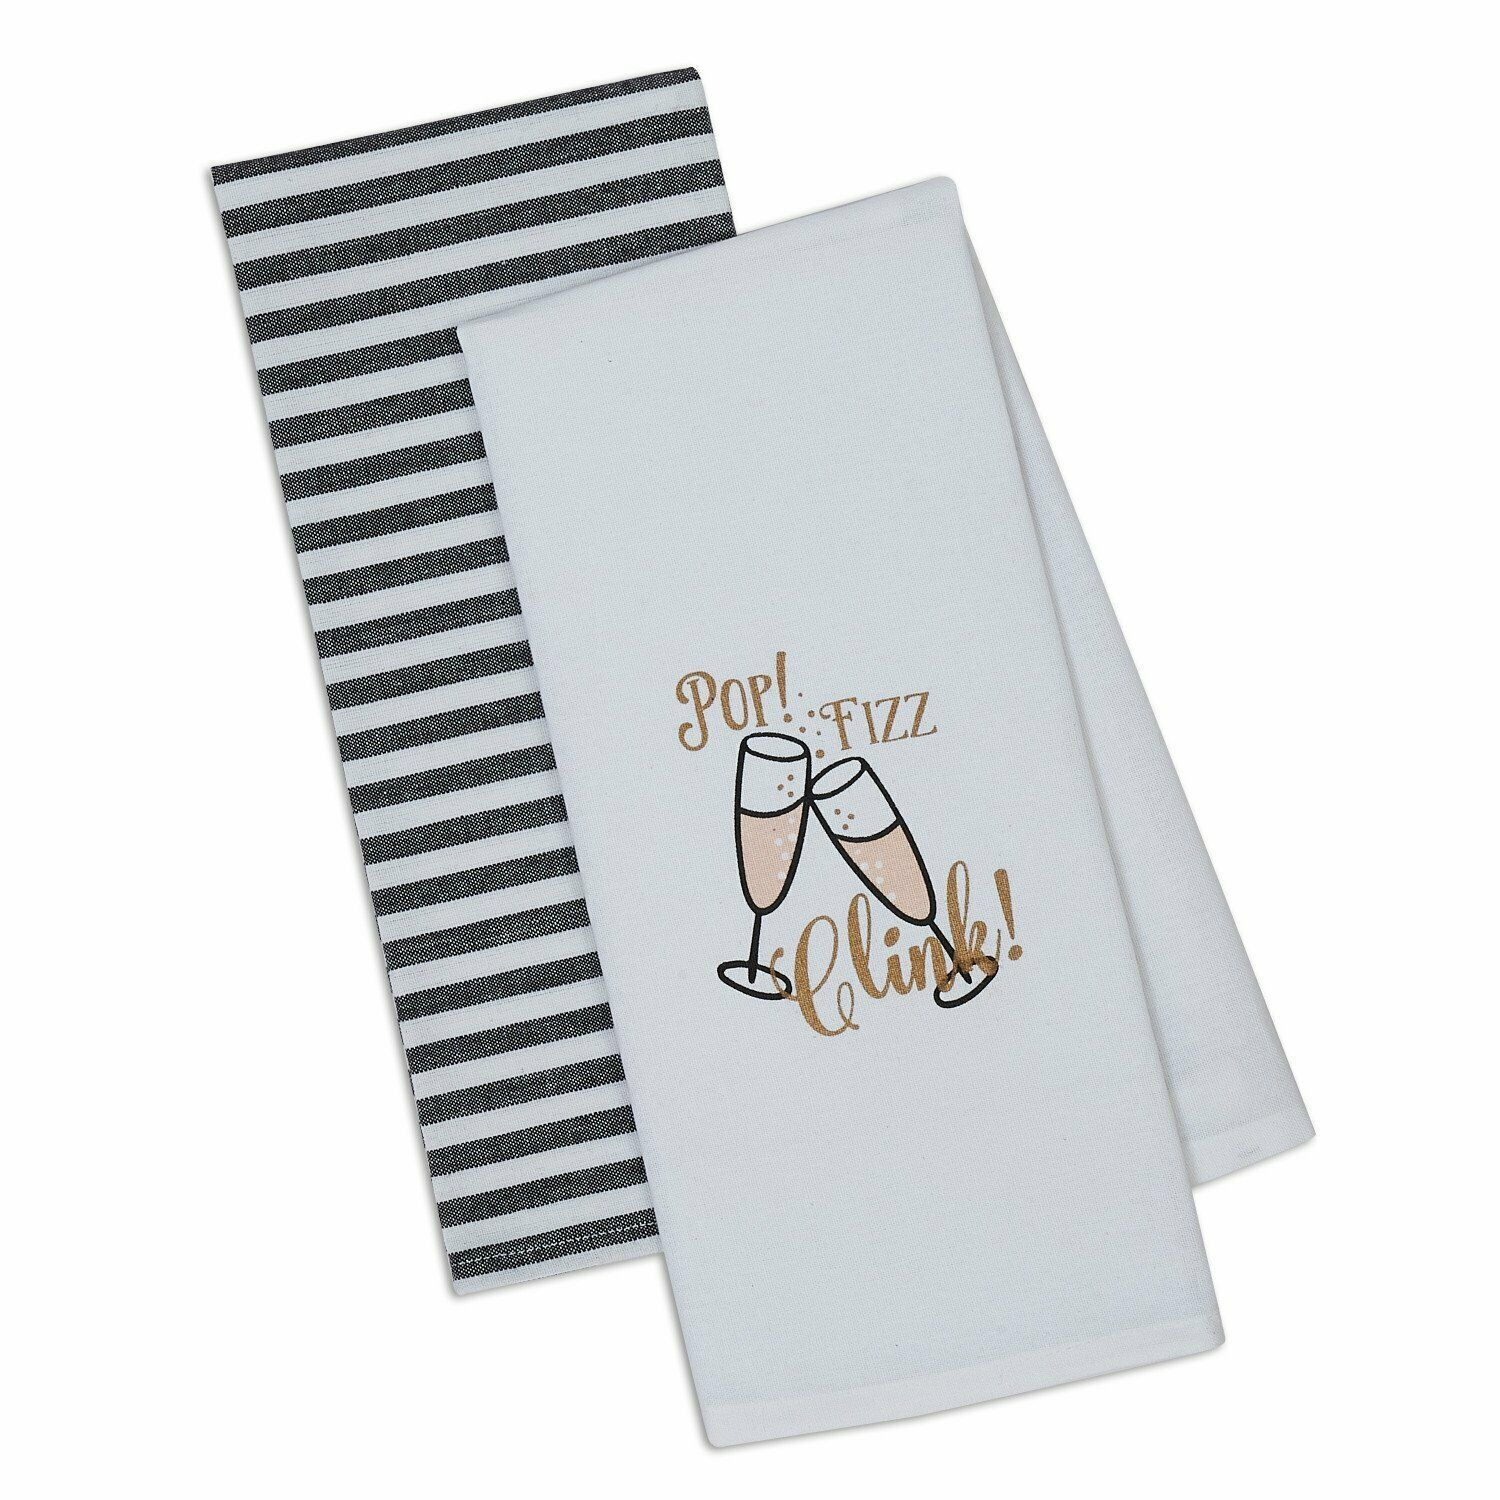 "Primary image for Pop Fizz Clink Dish Towels Set of 2 New Champagne Flutes Stripes Cotton 18""x28"""